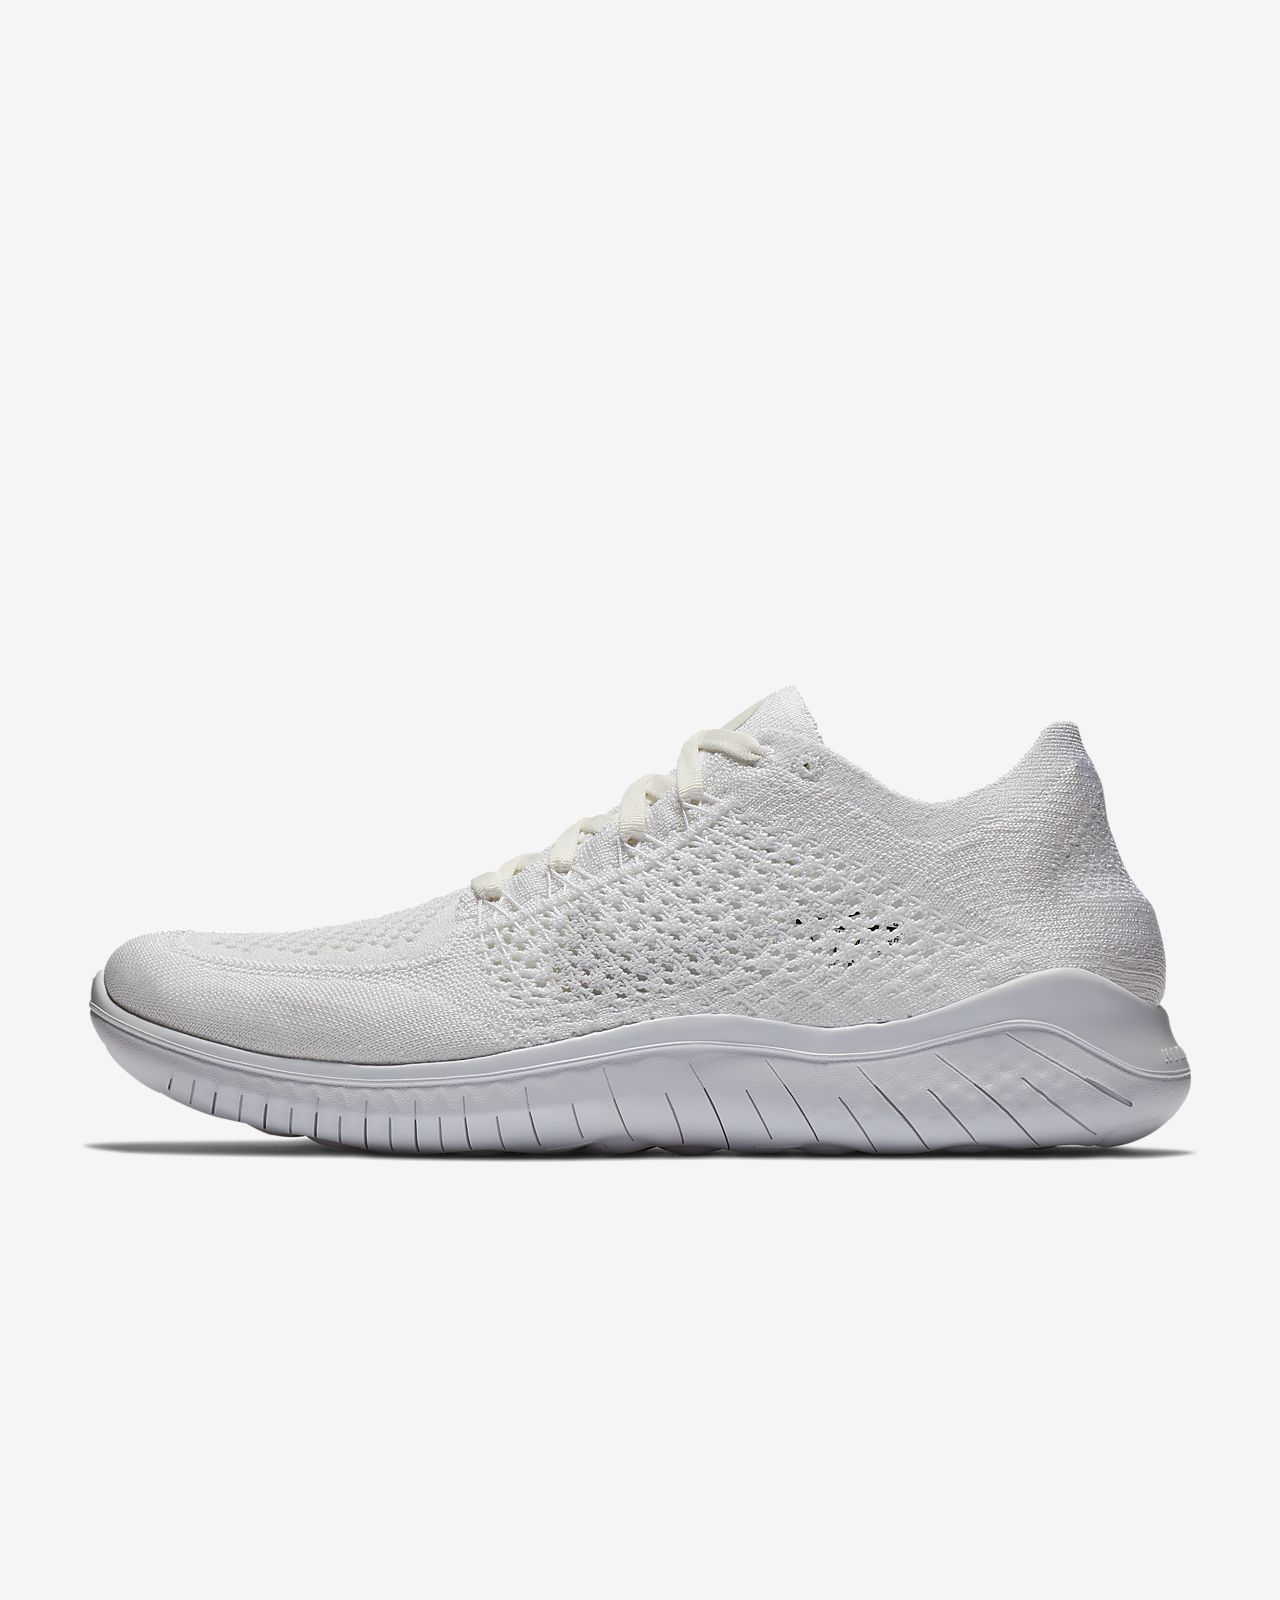 new style 069cd 91f3a Nike Free RN Flyknit 2018 Men's Running Shoe. Nike.com